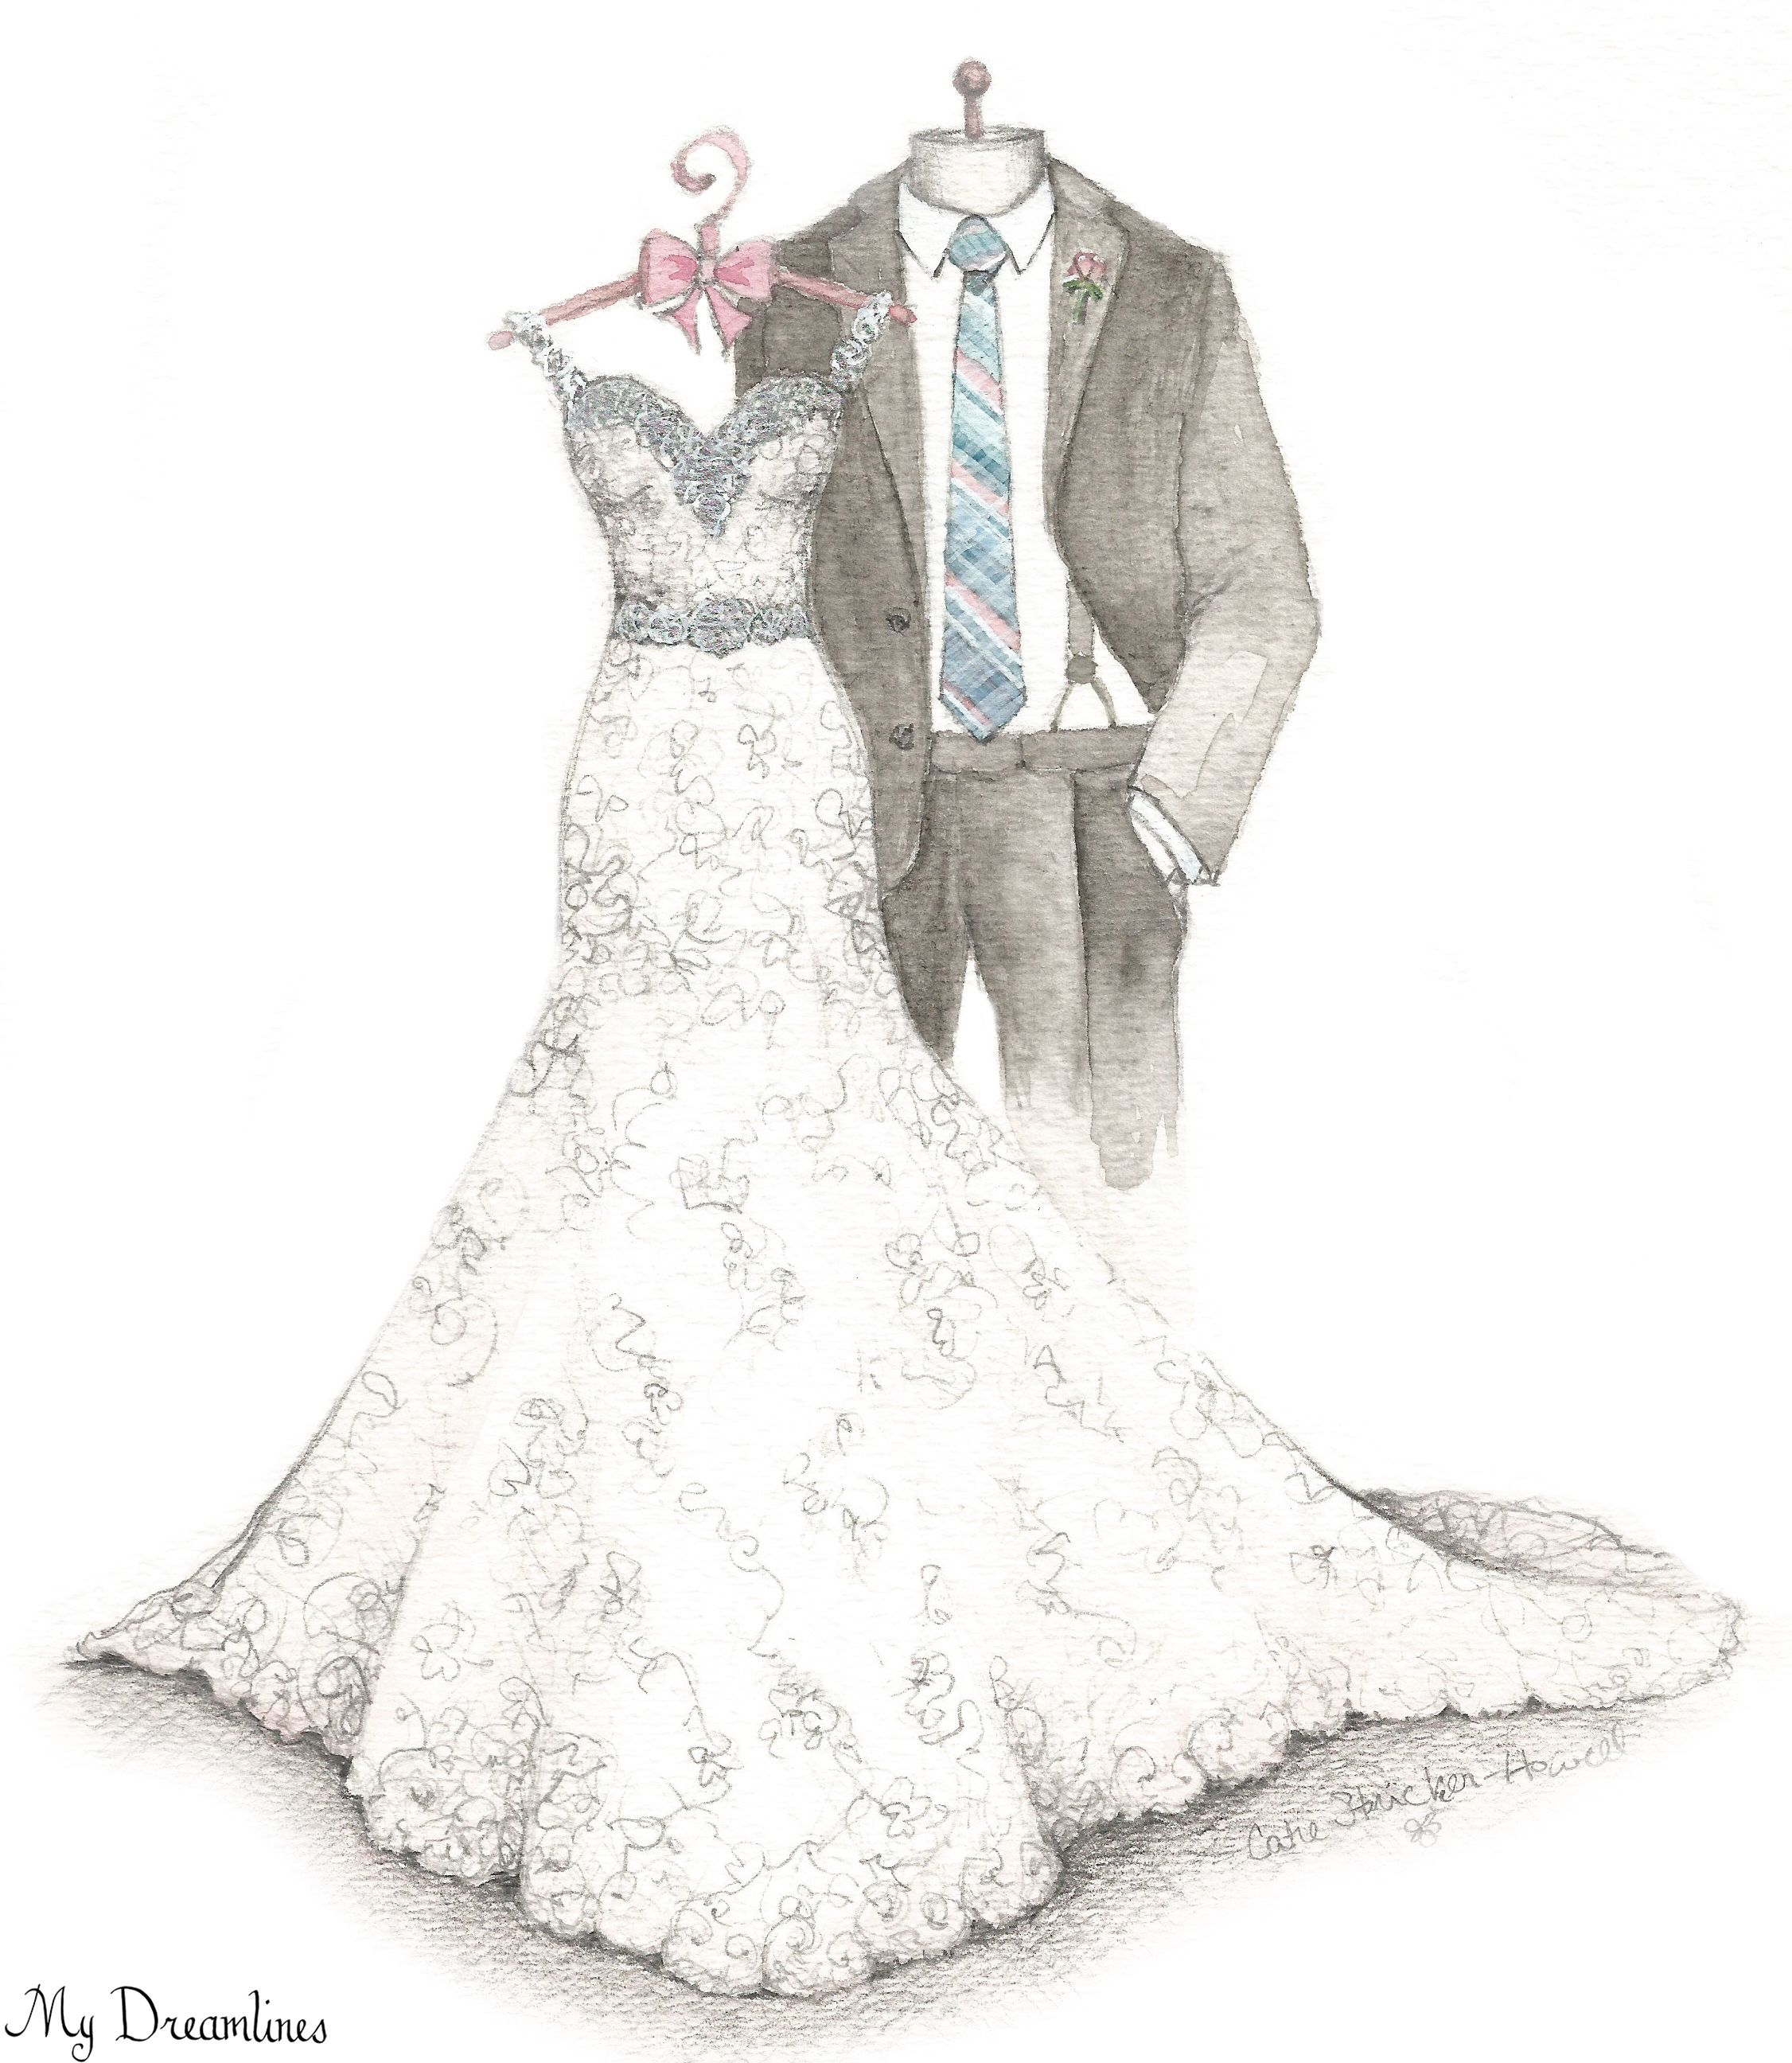 A Dreamlines Artist Creates Wedding Gifts To The Bride From The